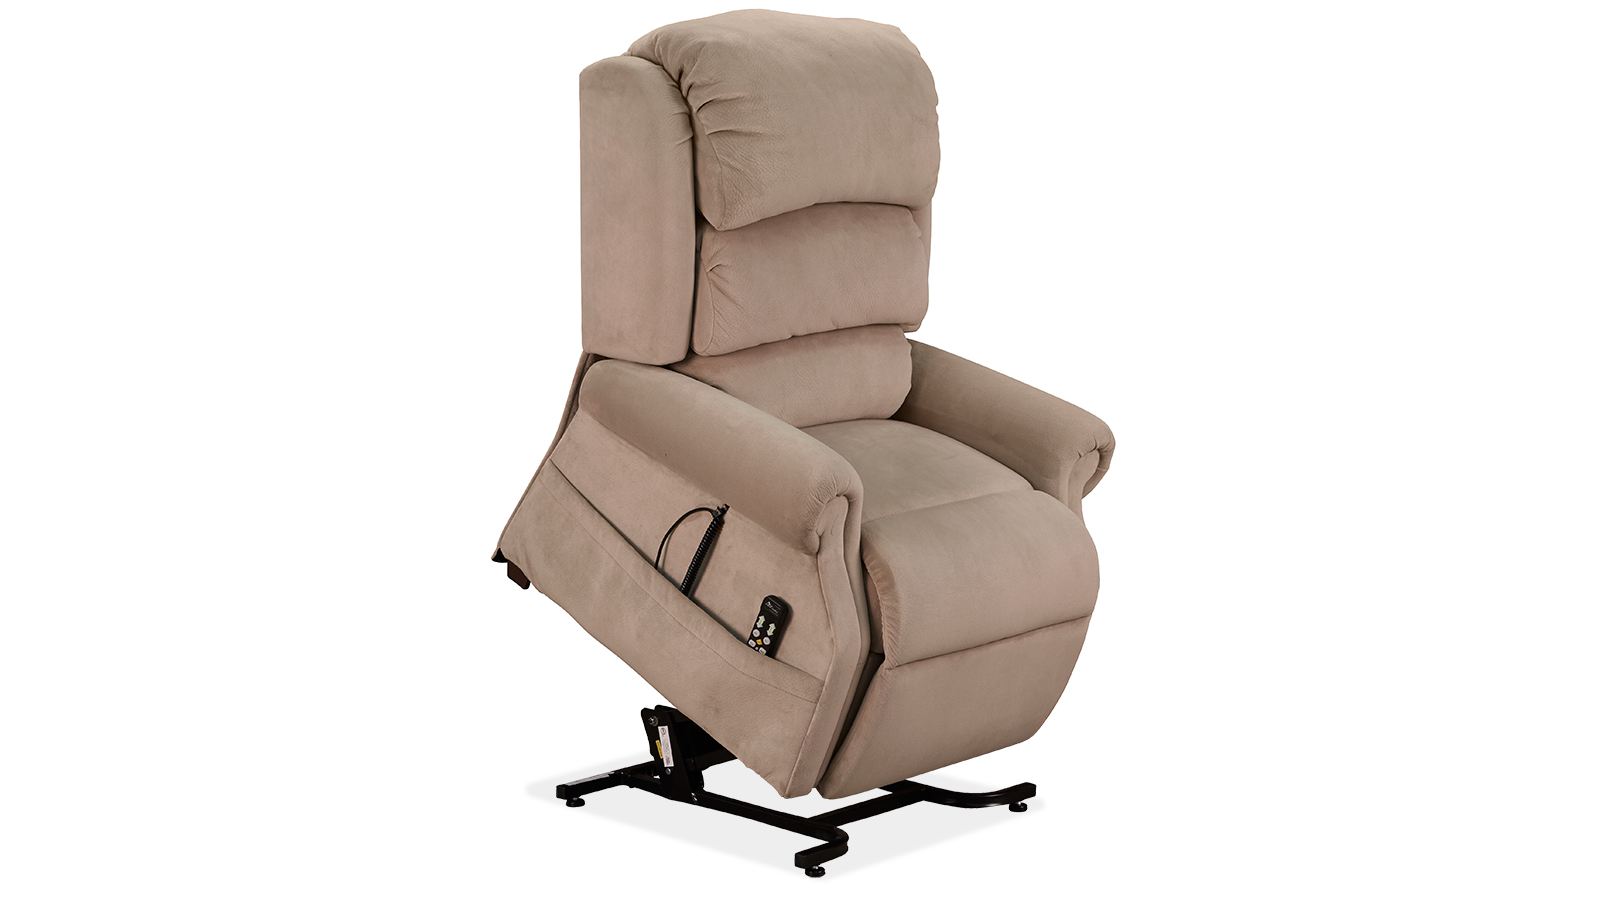 charming power lift recliners in cream with black metal stand for home furniture ideas